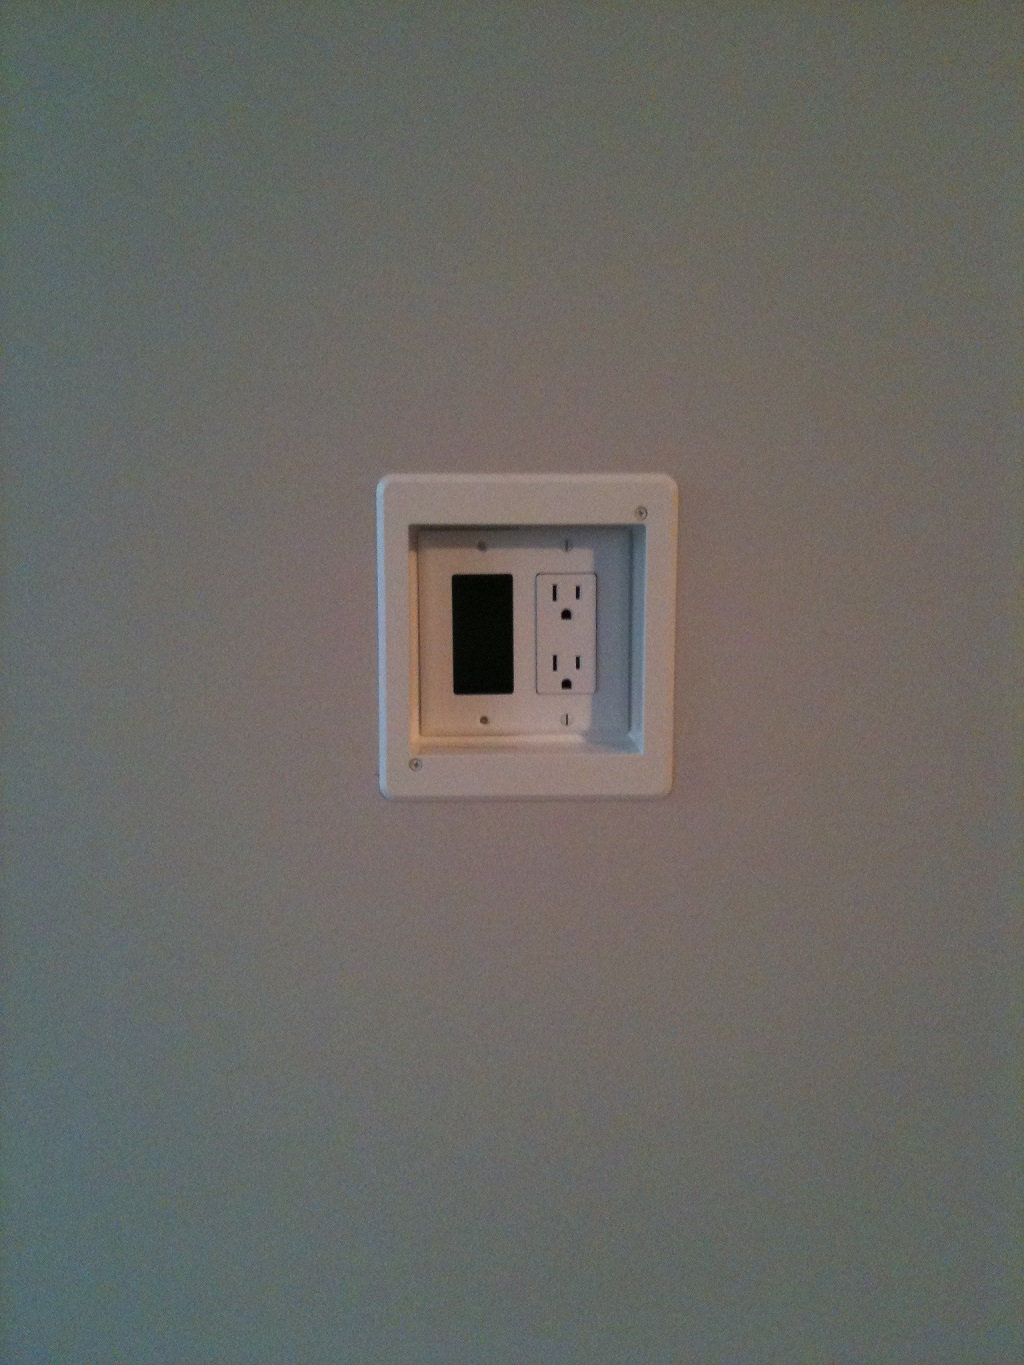 Cat5 Wall Outlet Wiring Diagram Get Free Image About Wiring Diagram